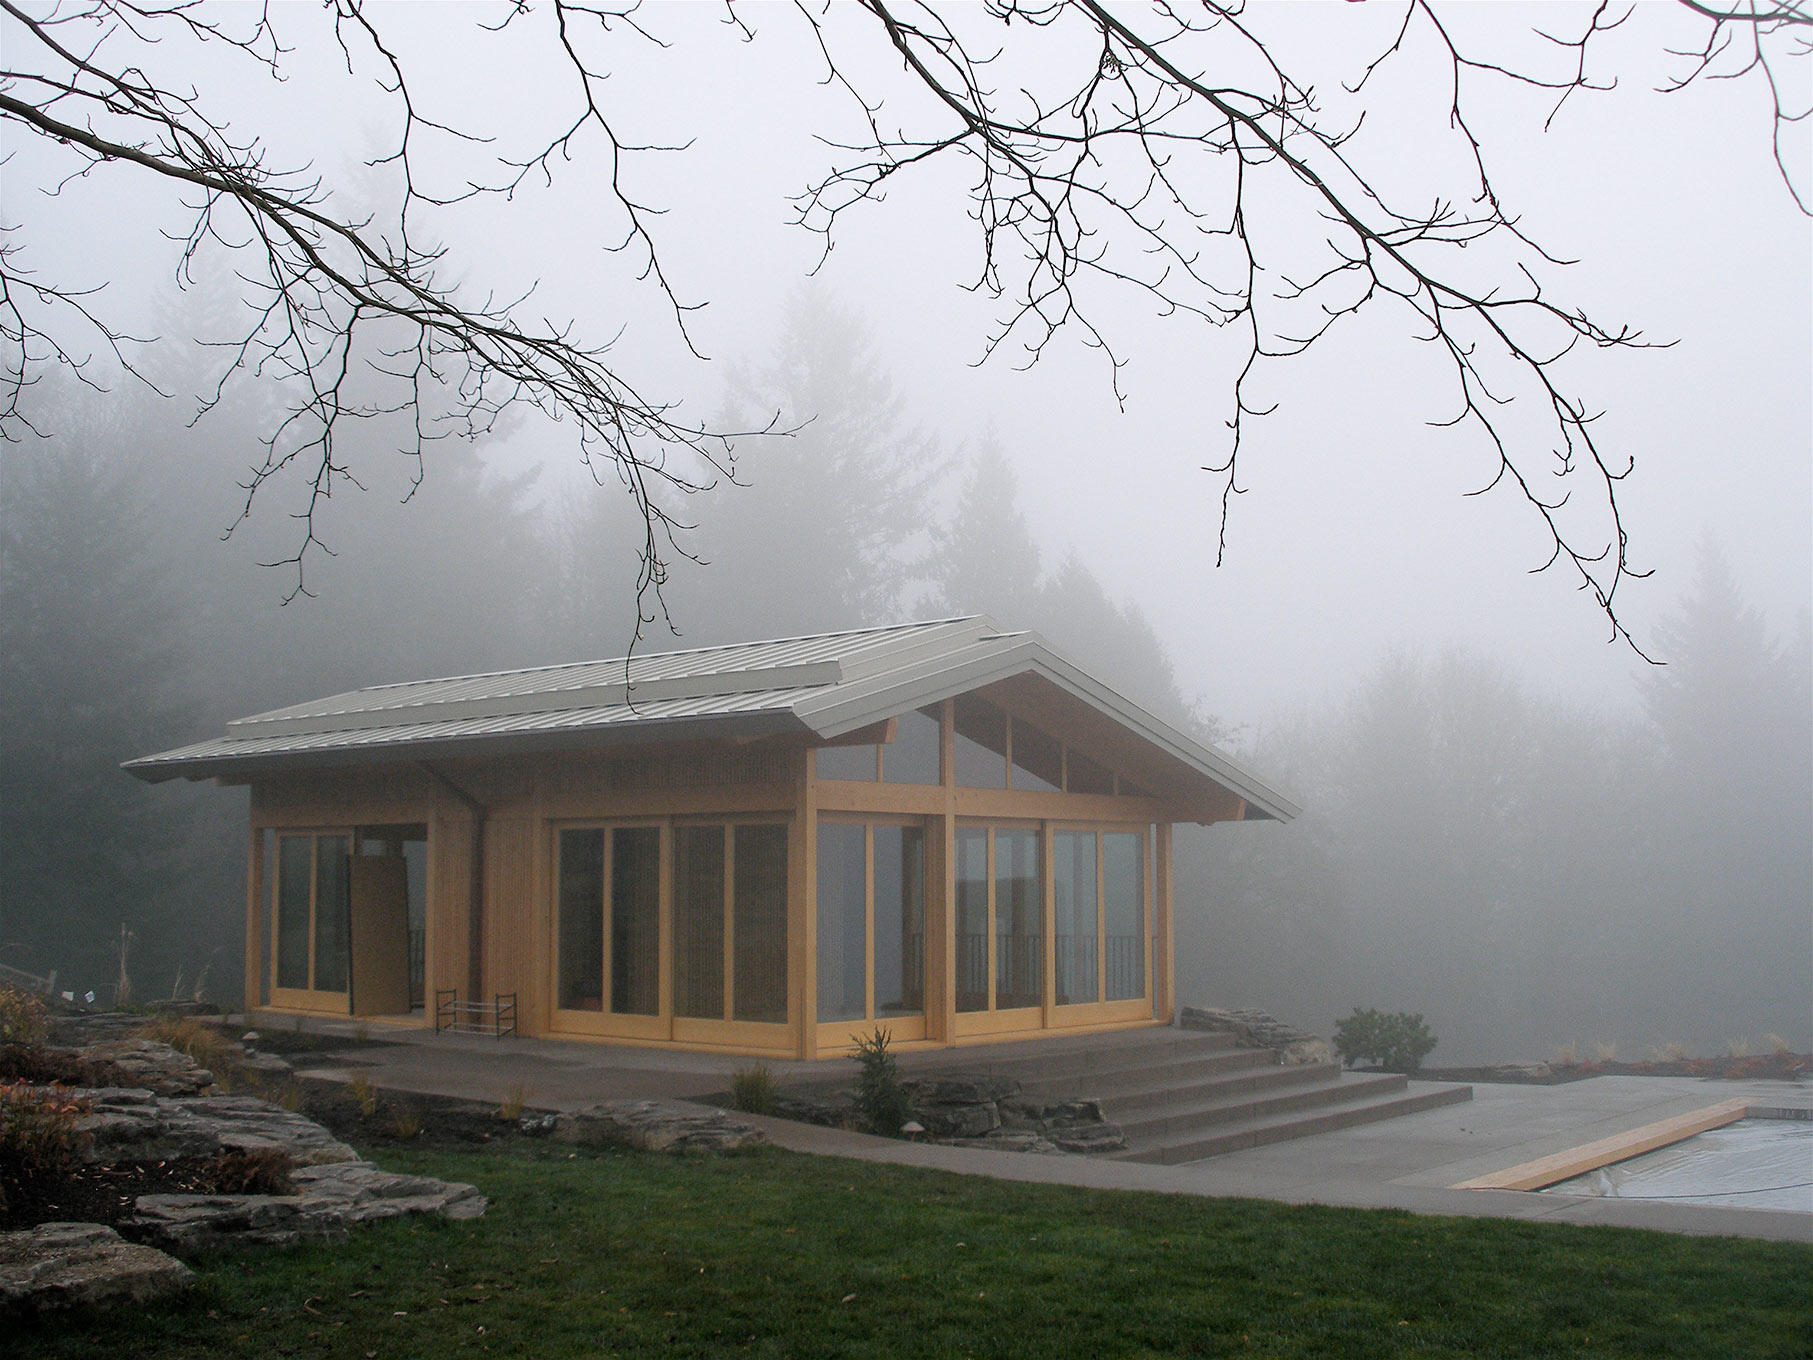 West Wind exterior in fog